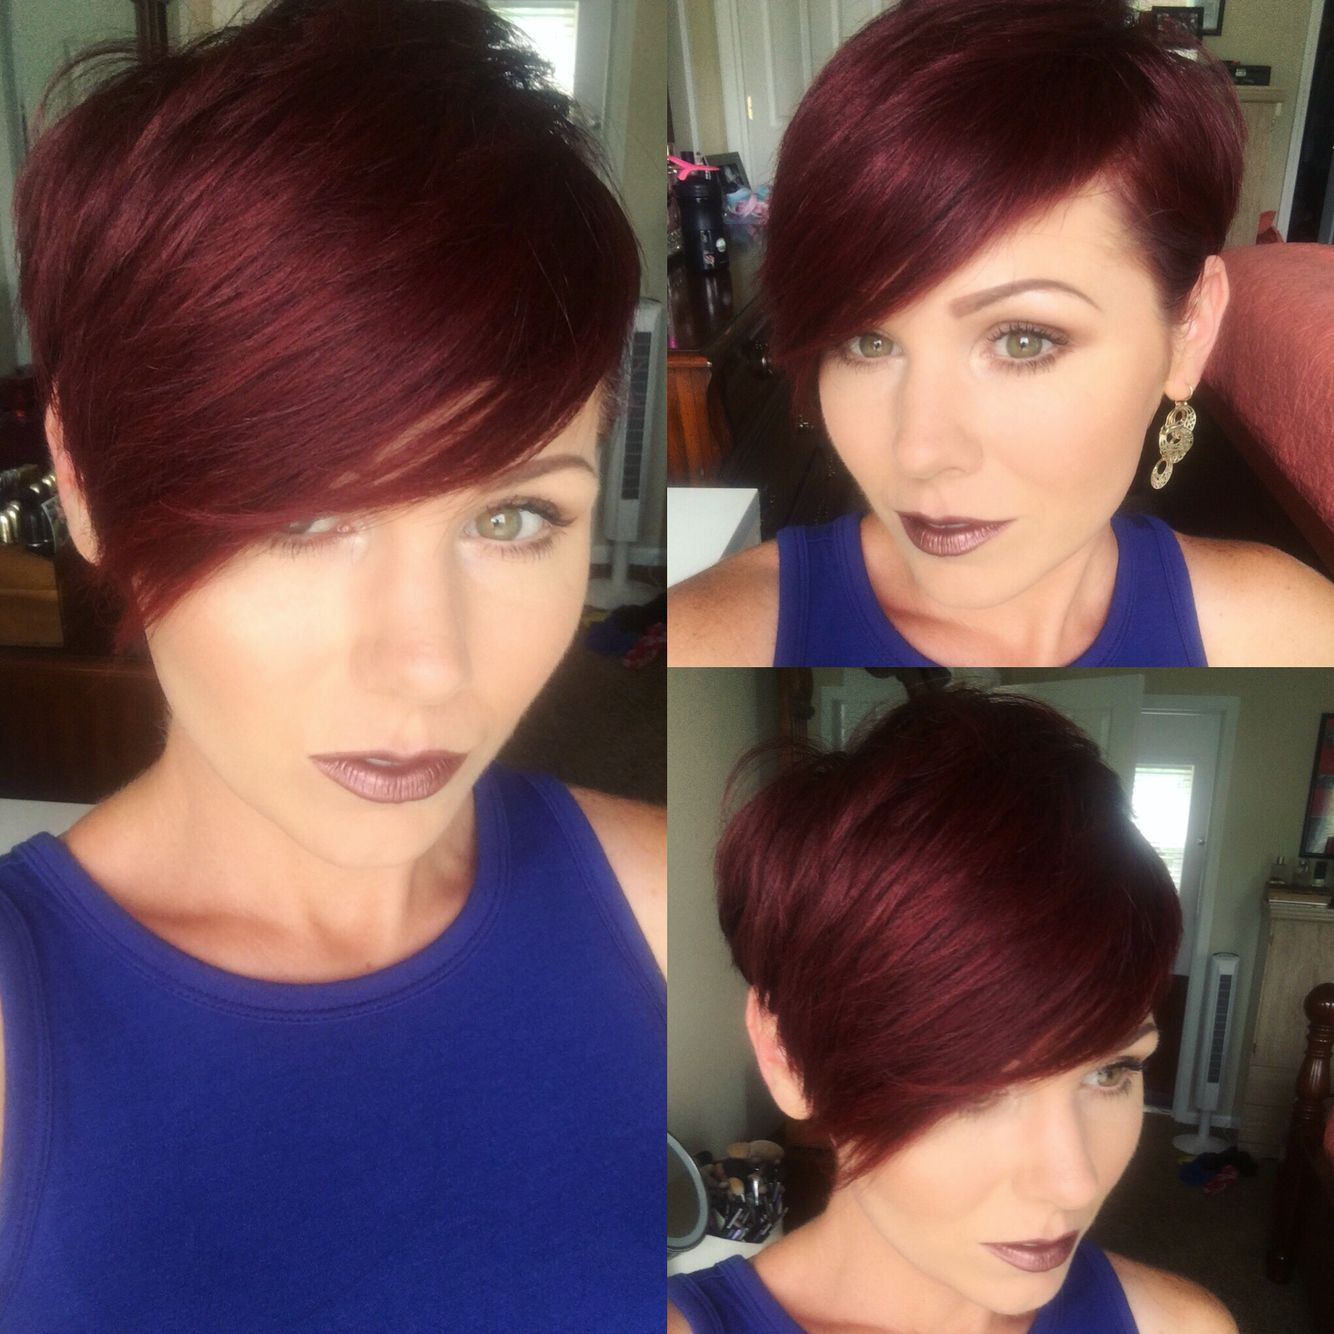 Redhair pixie new haircut pinterest pixies and short hair